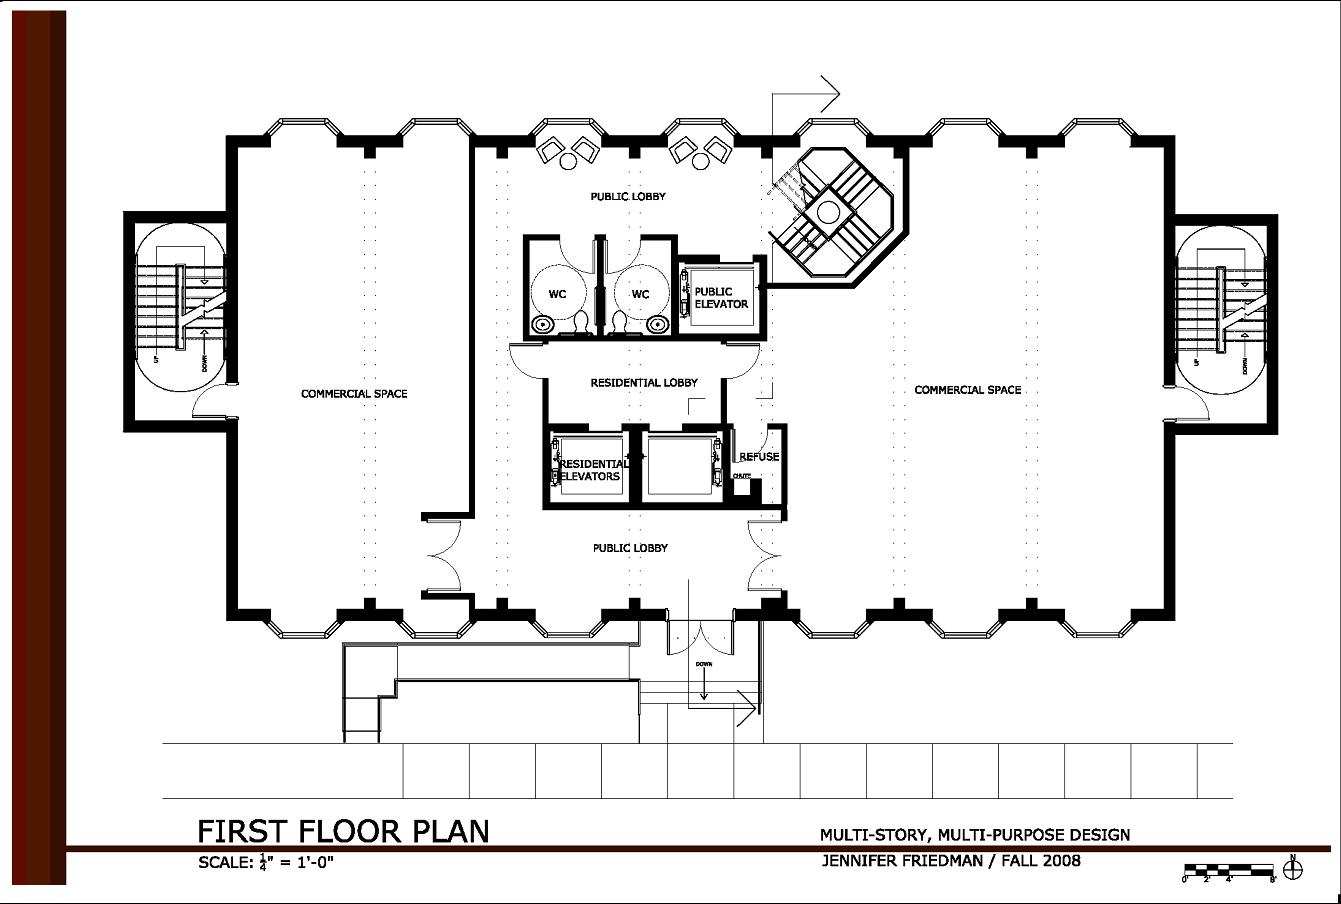 15 small two story office building design images two for Small commercial building design plans